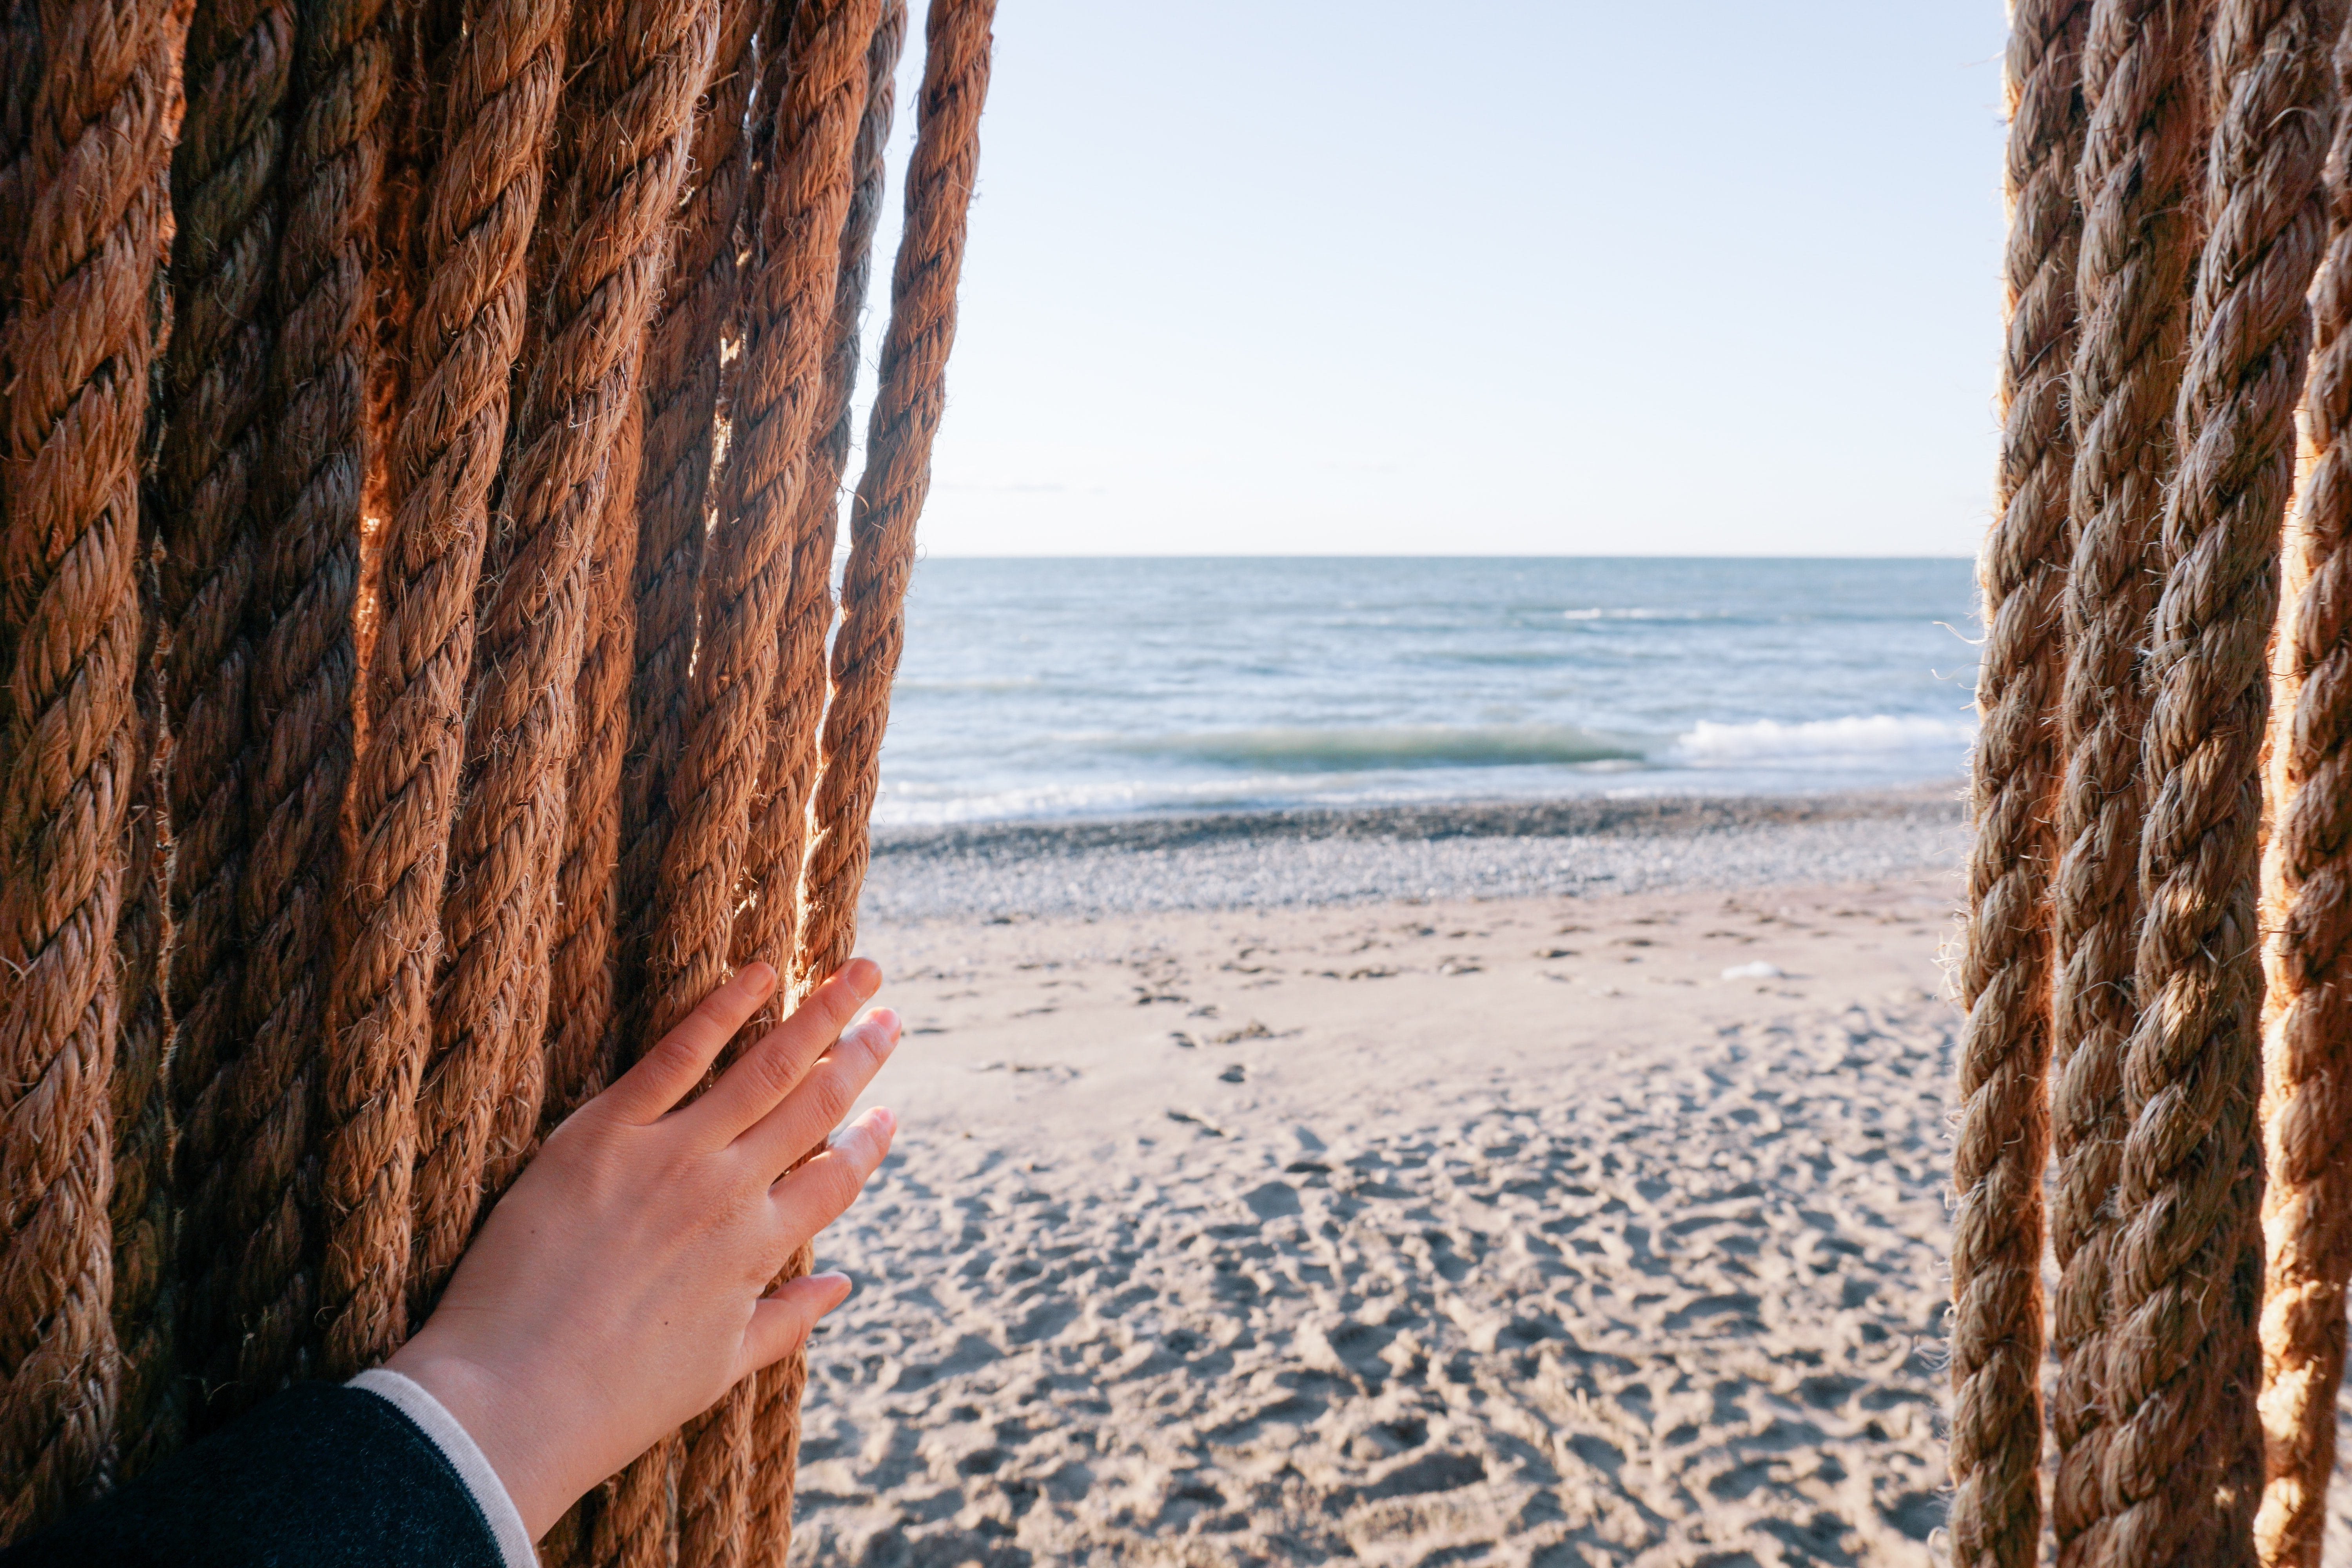 A person's hands pushing long hanging ropes aside on a sandy beach